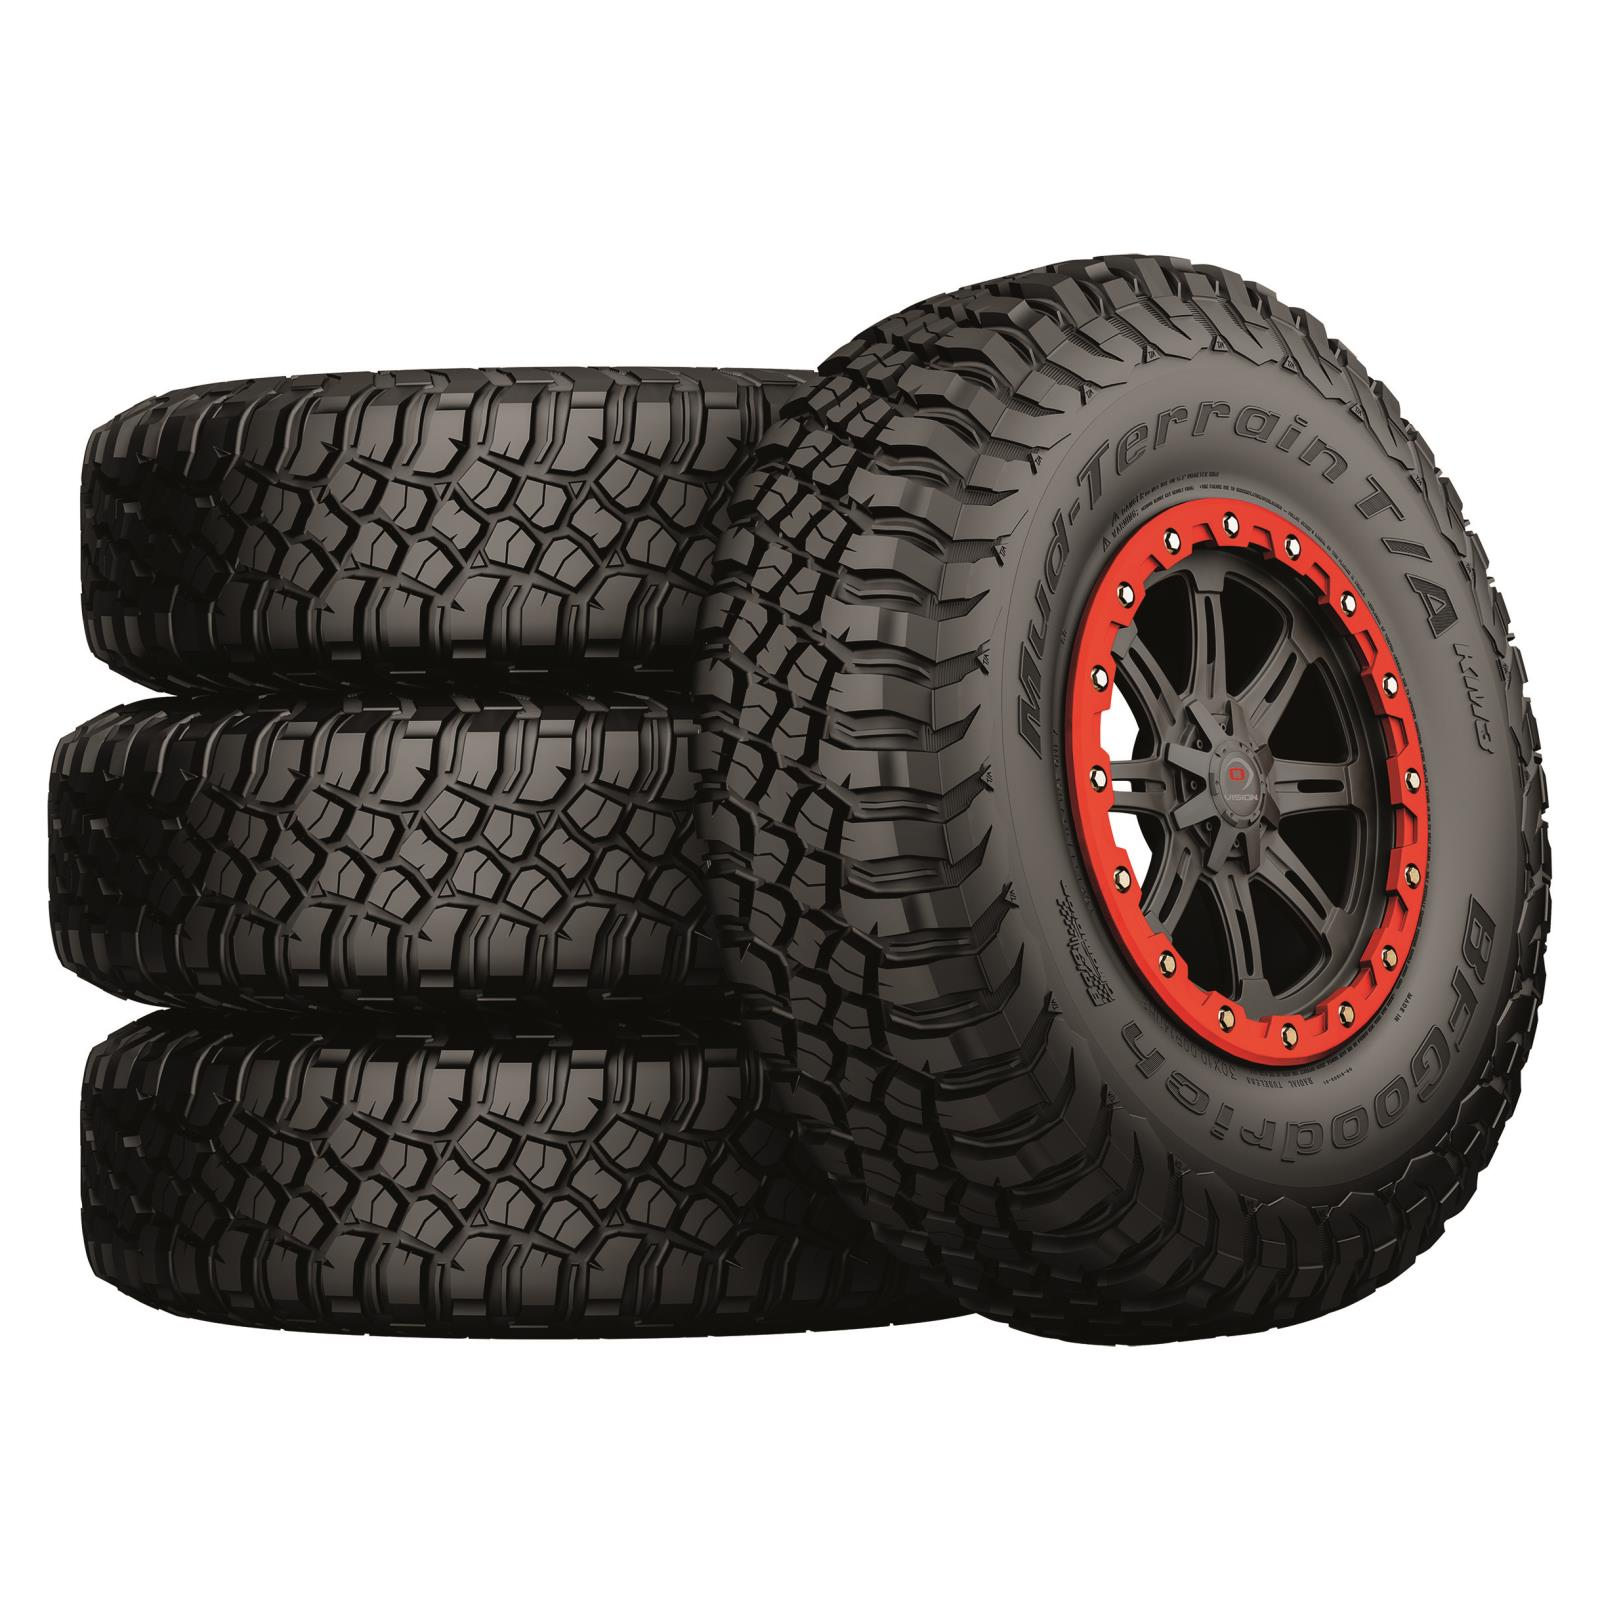 Bfgoodrich Introduces Km3 Utv Tires Bfgoodrich North America Newsroom